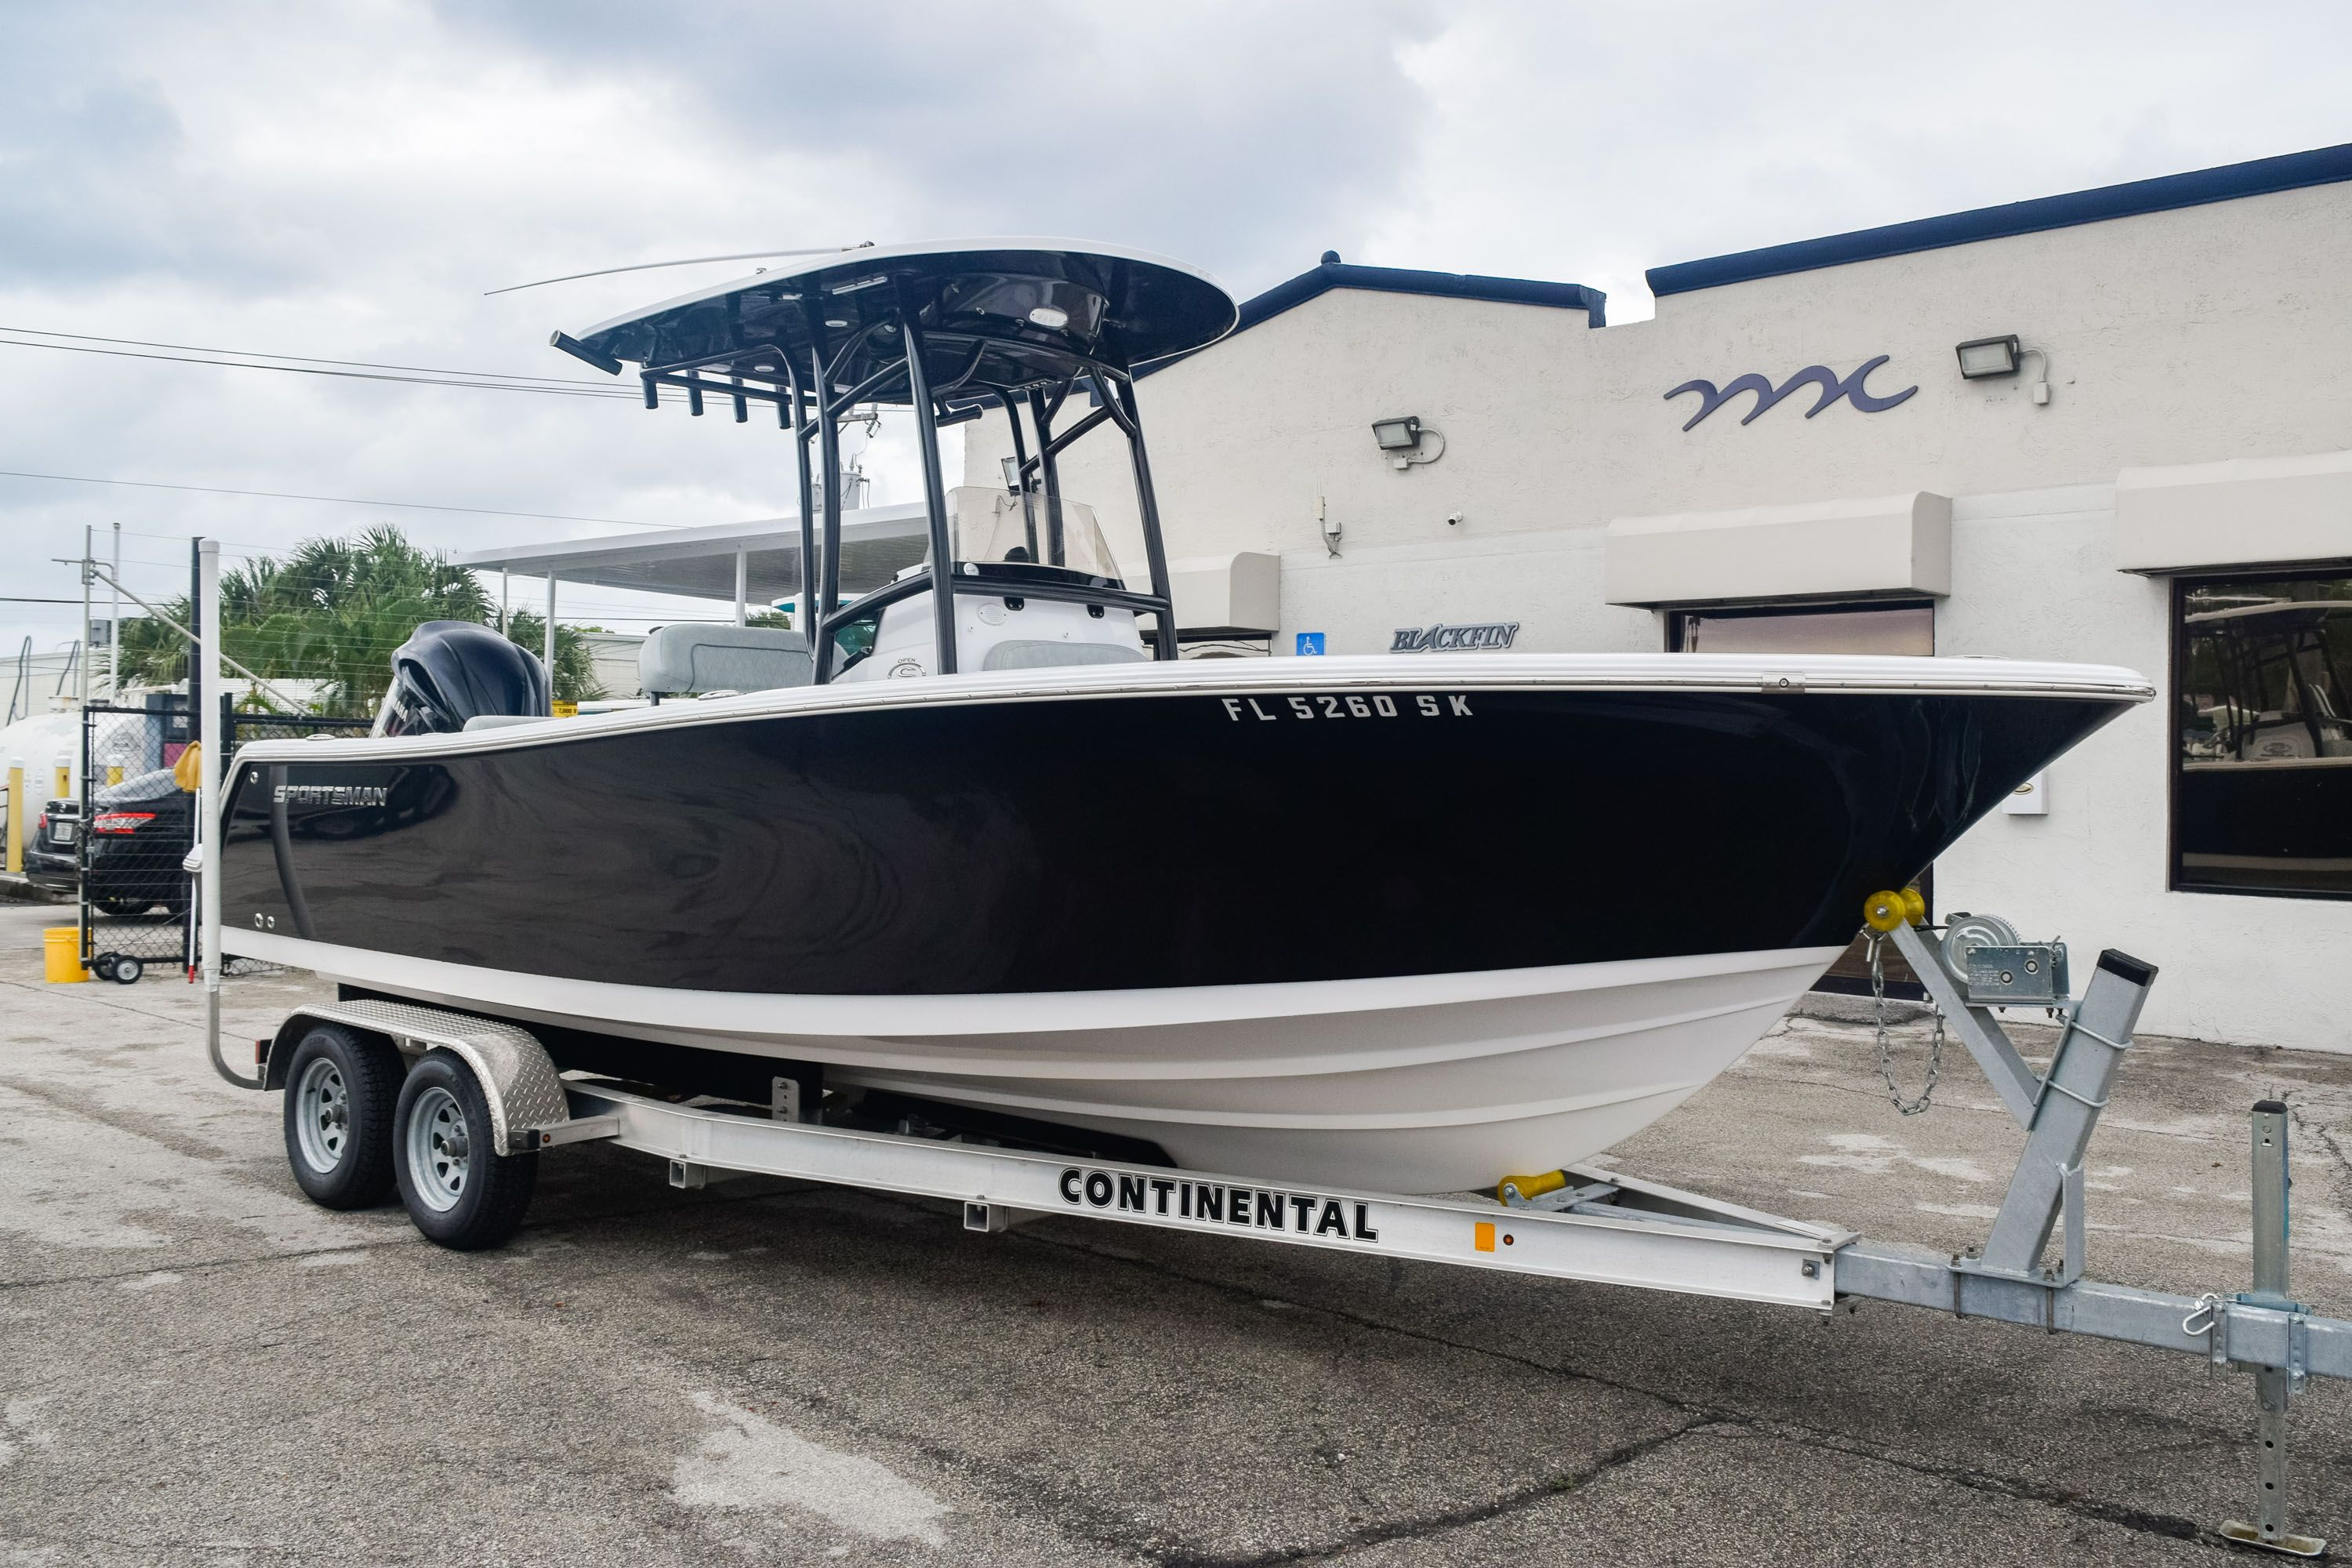 Thumbnail 1 for Used 2019 Sportsman Open 232 Center Console boat for sale in Fort Lauderdale, FL